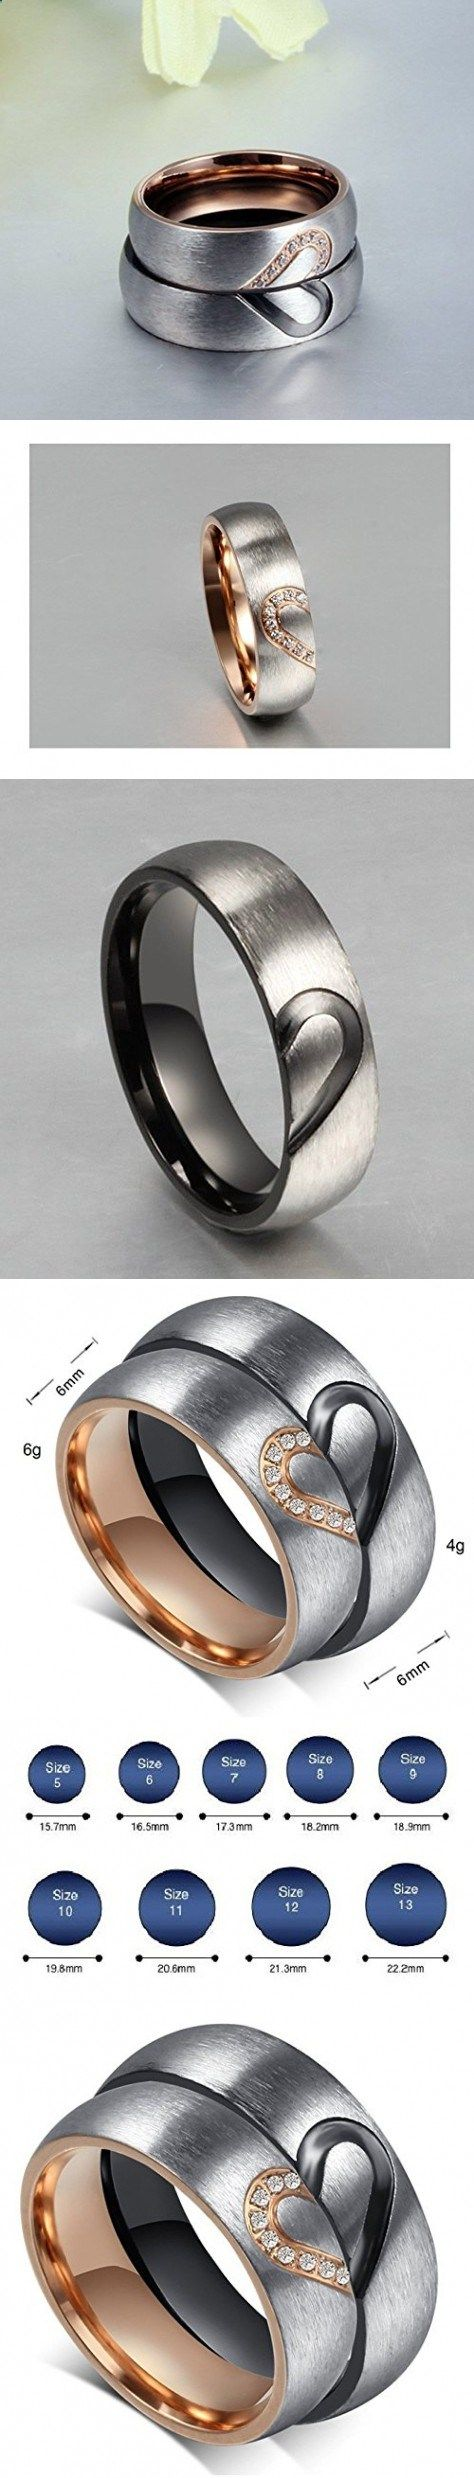 Aegean Jewelry Titanium Couple Fashion Wedding Band Ring We Are a Perfect Match Love Style with a Gift Box and a FREE Small Gift (MENS, 10)